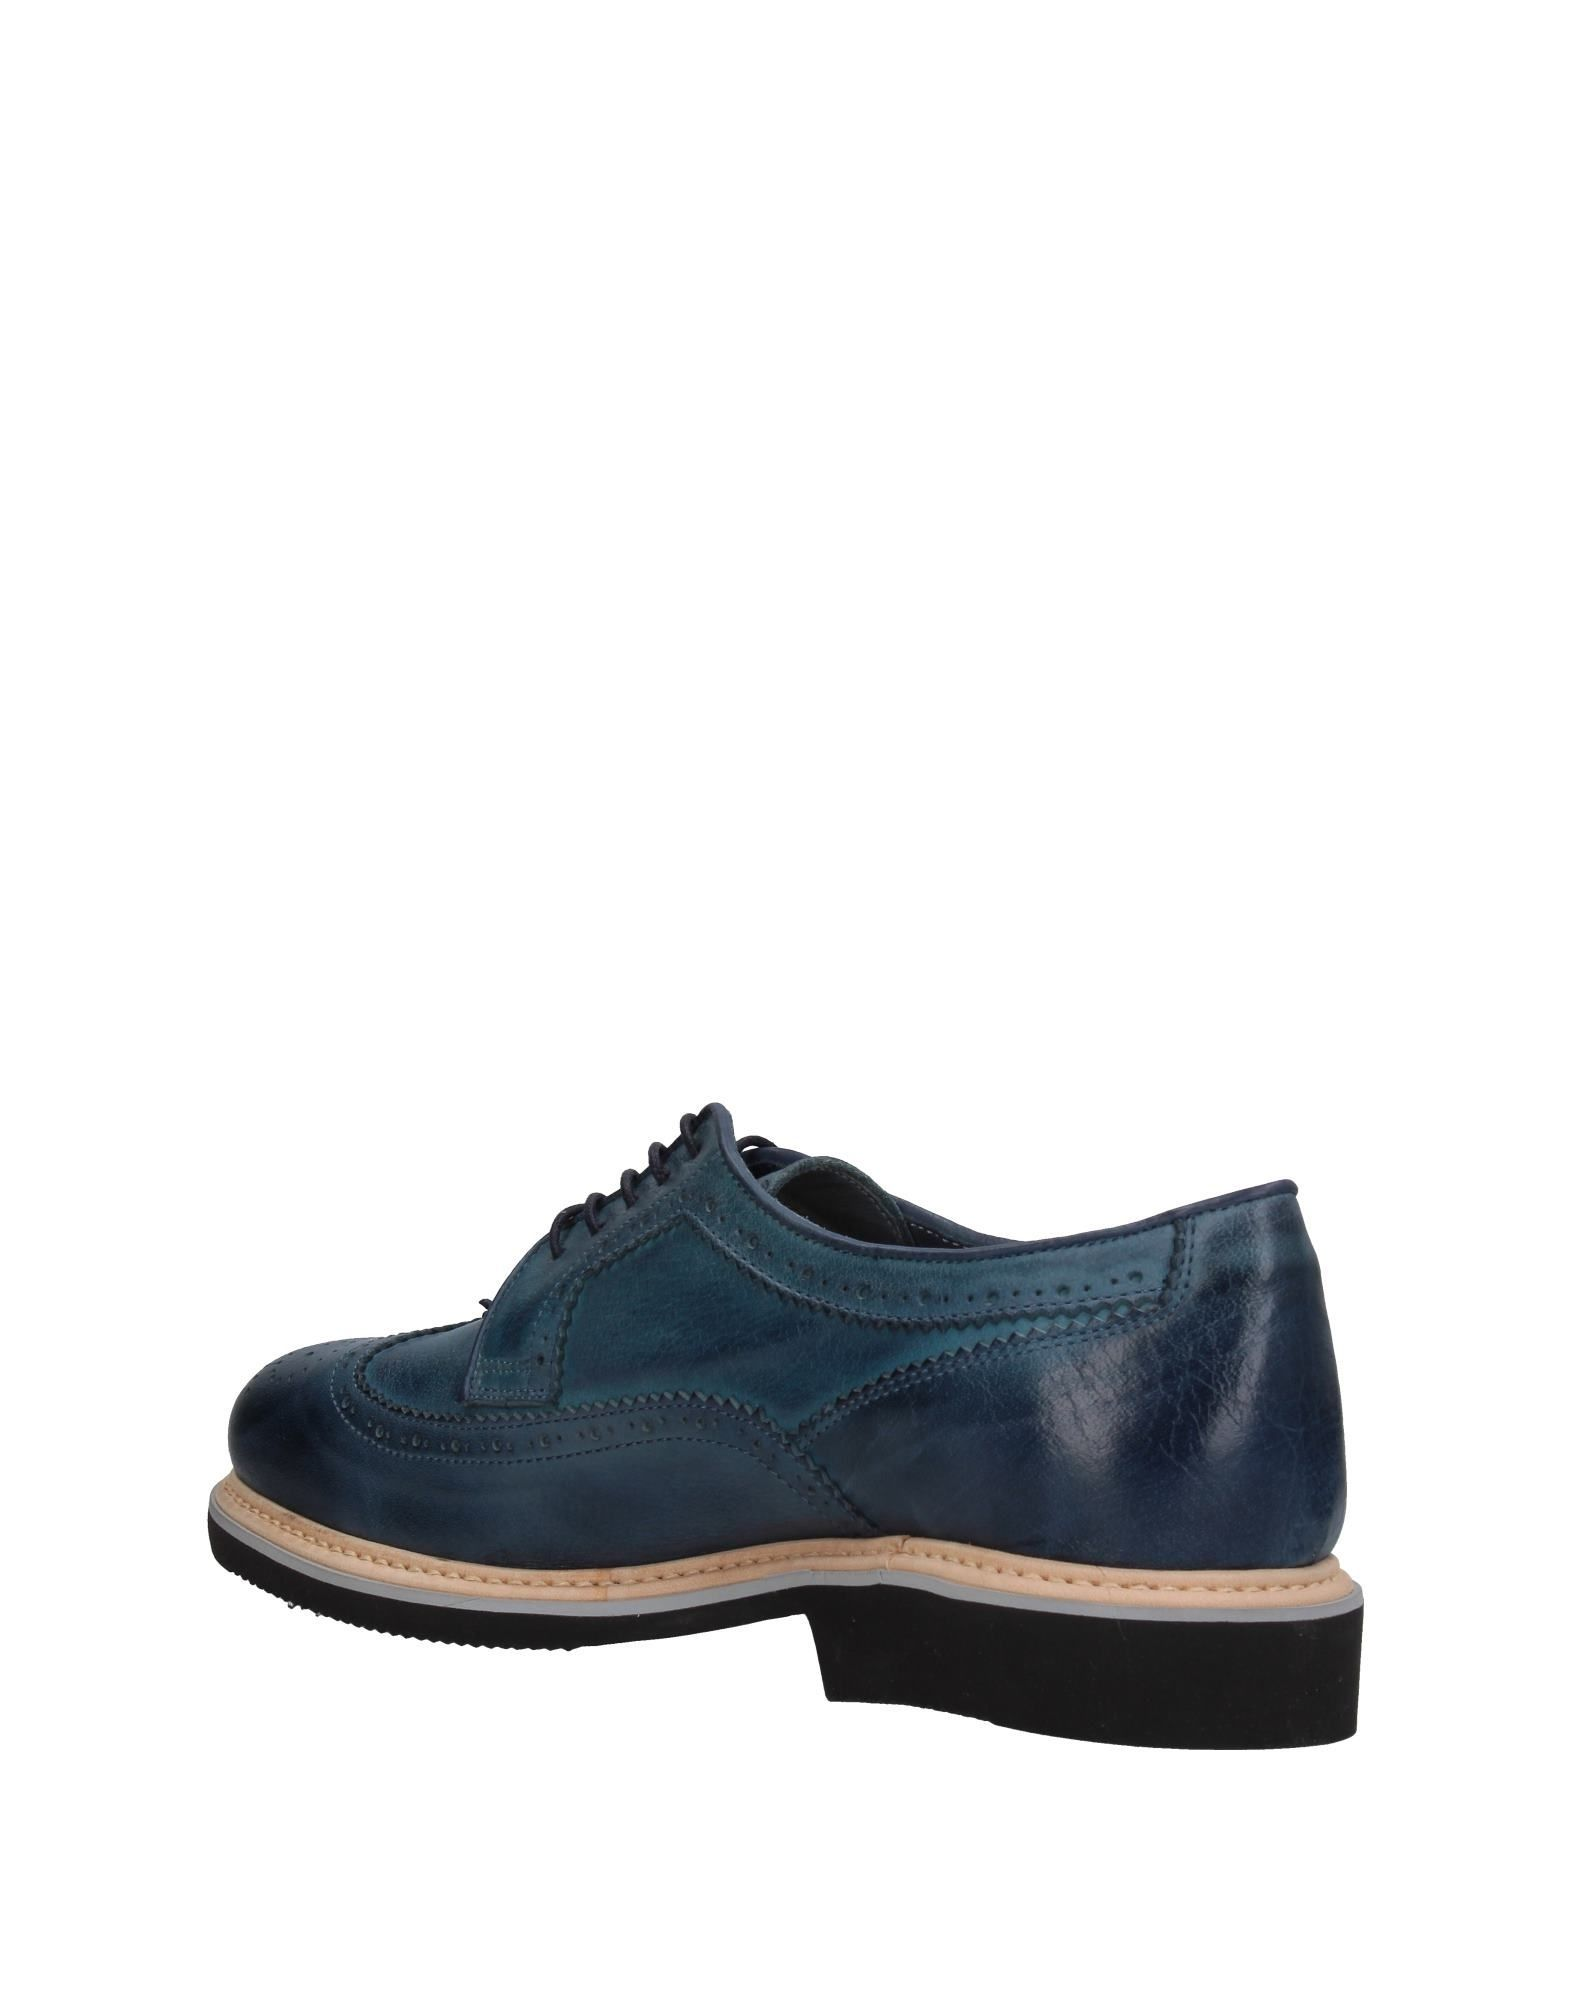 Flexa By Fratelli Rossetti Man Lace-up shoes